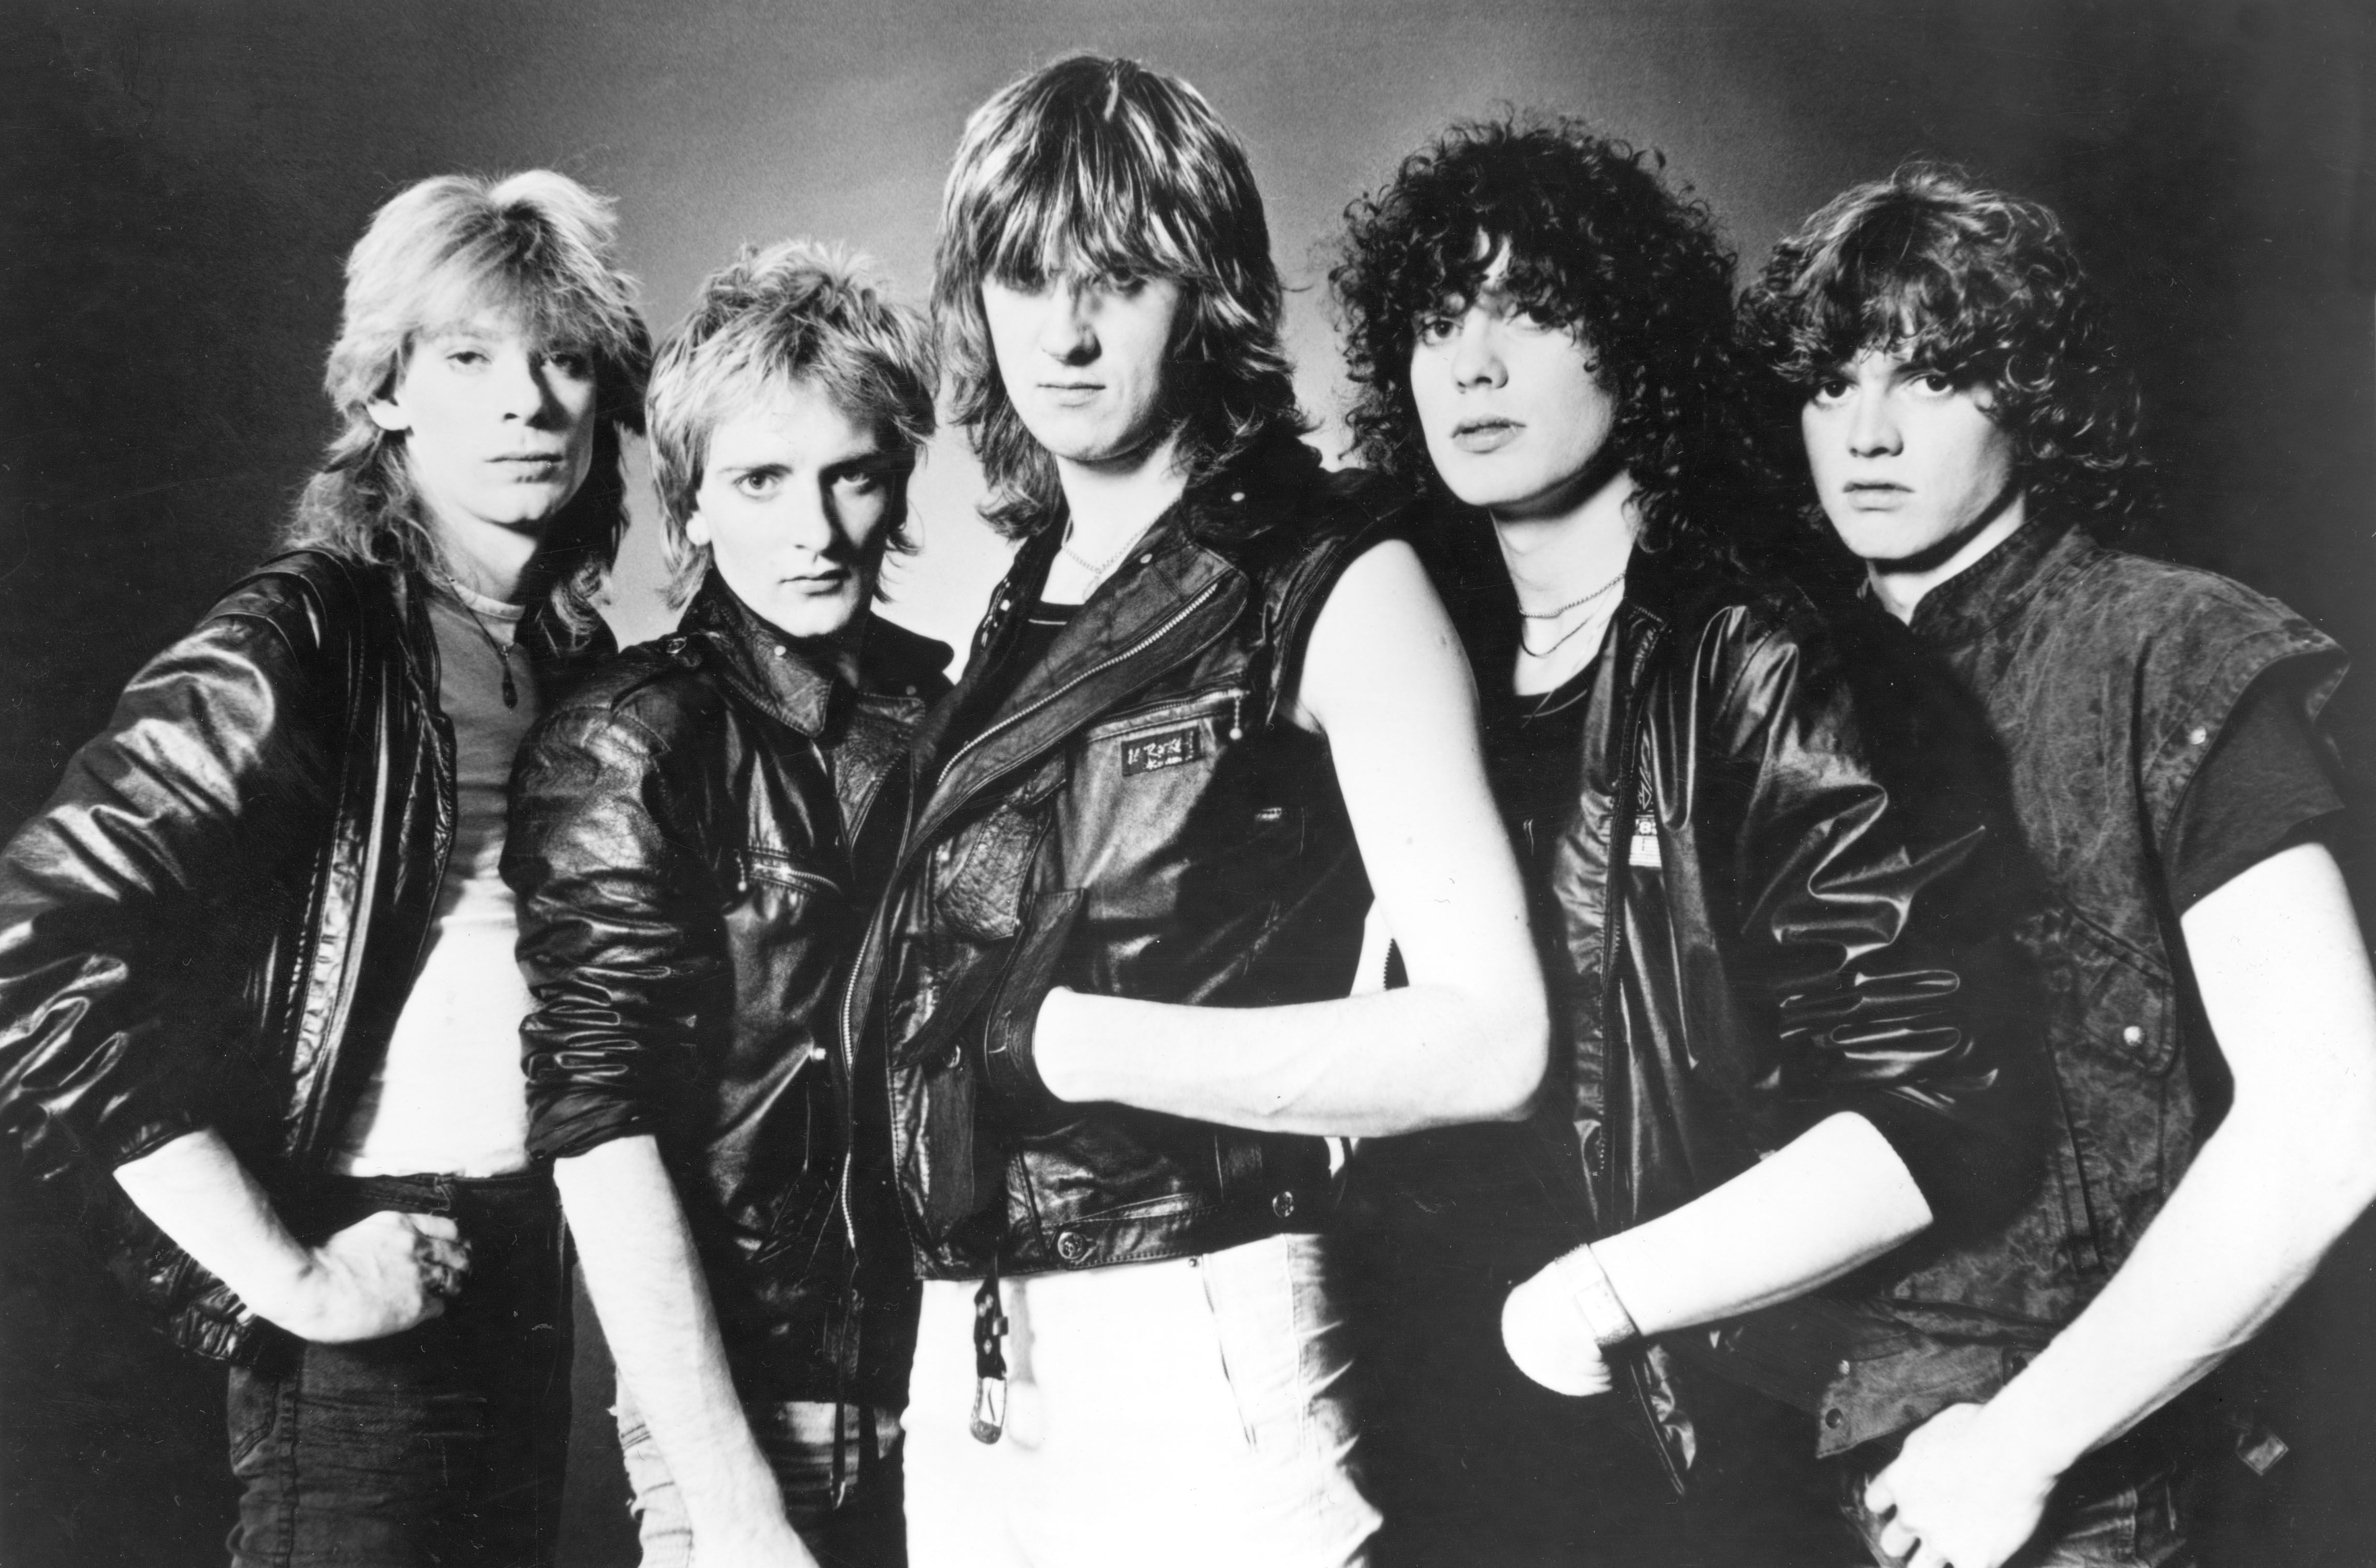 Def leppard favorite us hair band i love the us